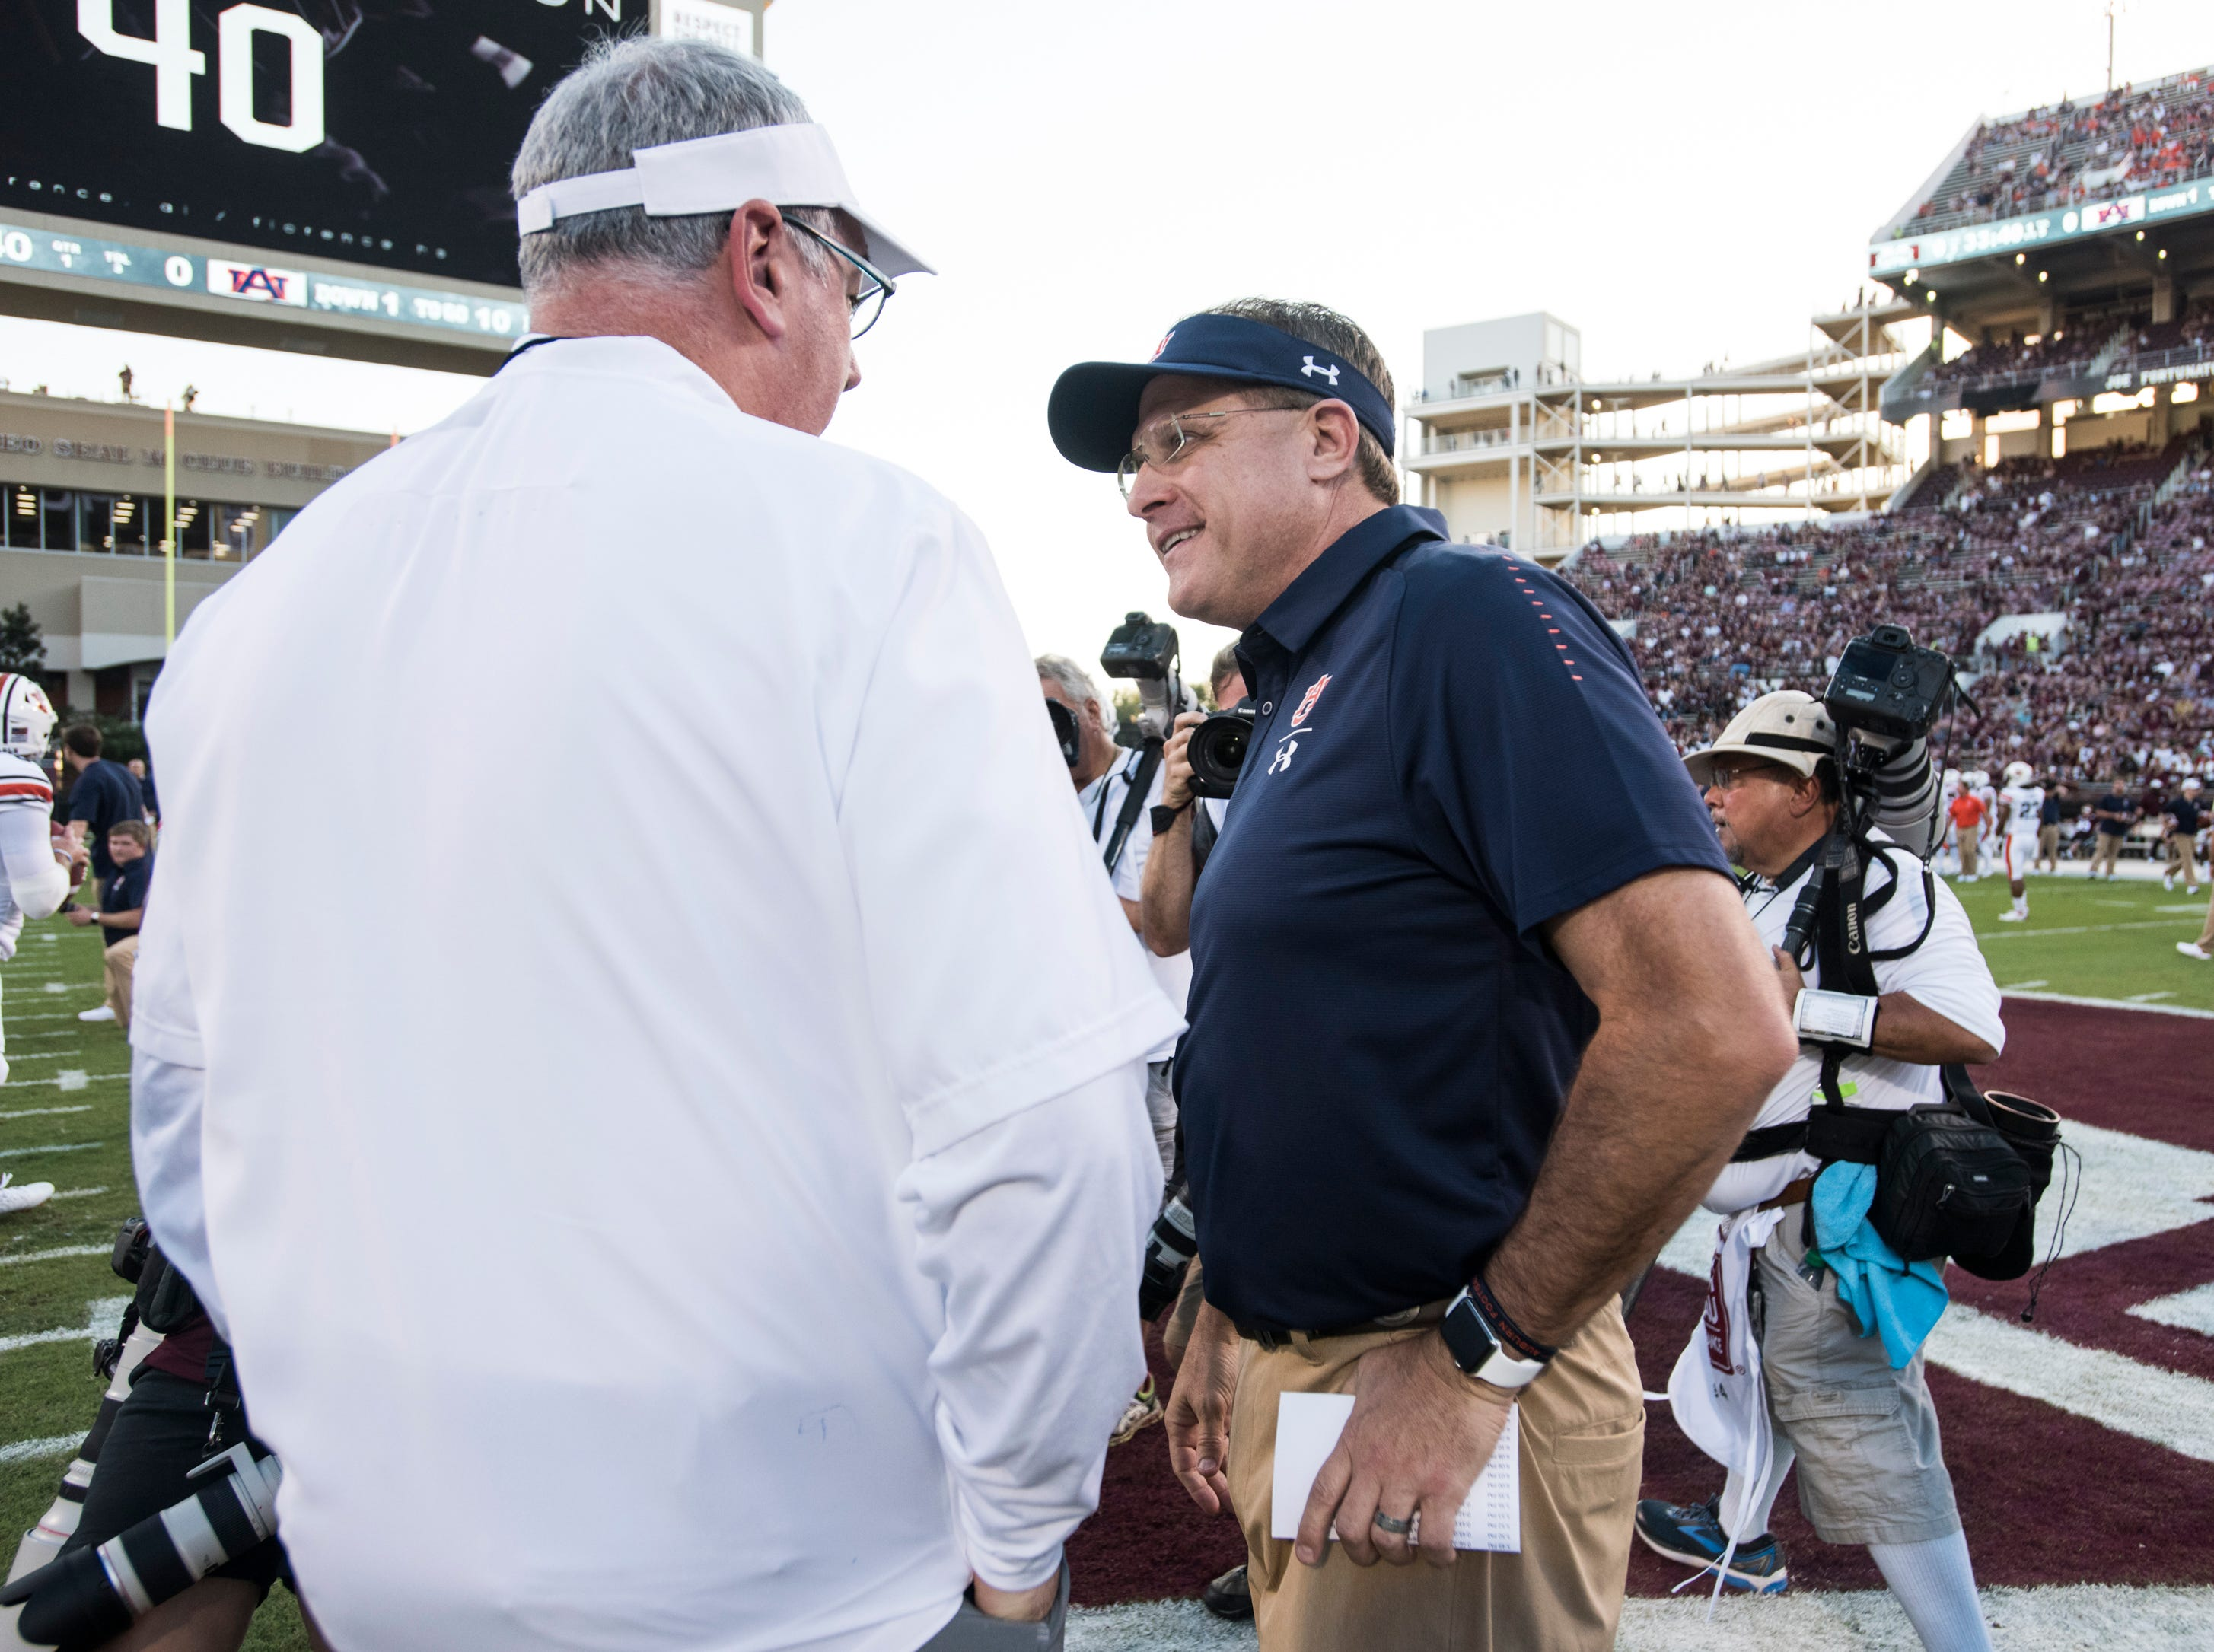 Auburn head coach Gus Malzahn talks with Mississippi State head coach Joe Moorhead as their teams warm up at Davis Wade Stadium in Starkville, Miss., on Saturday, Oct. 6, 2018. Mississippi State defeated Auburn 23-9.